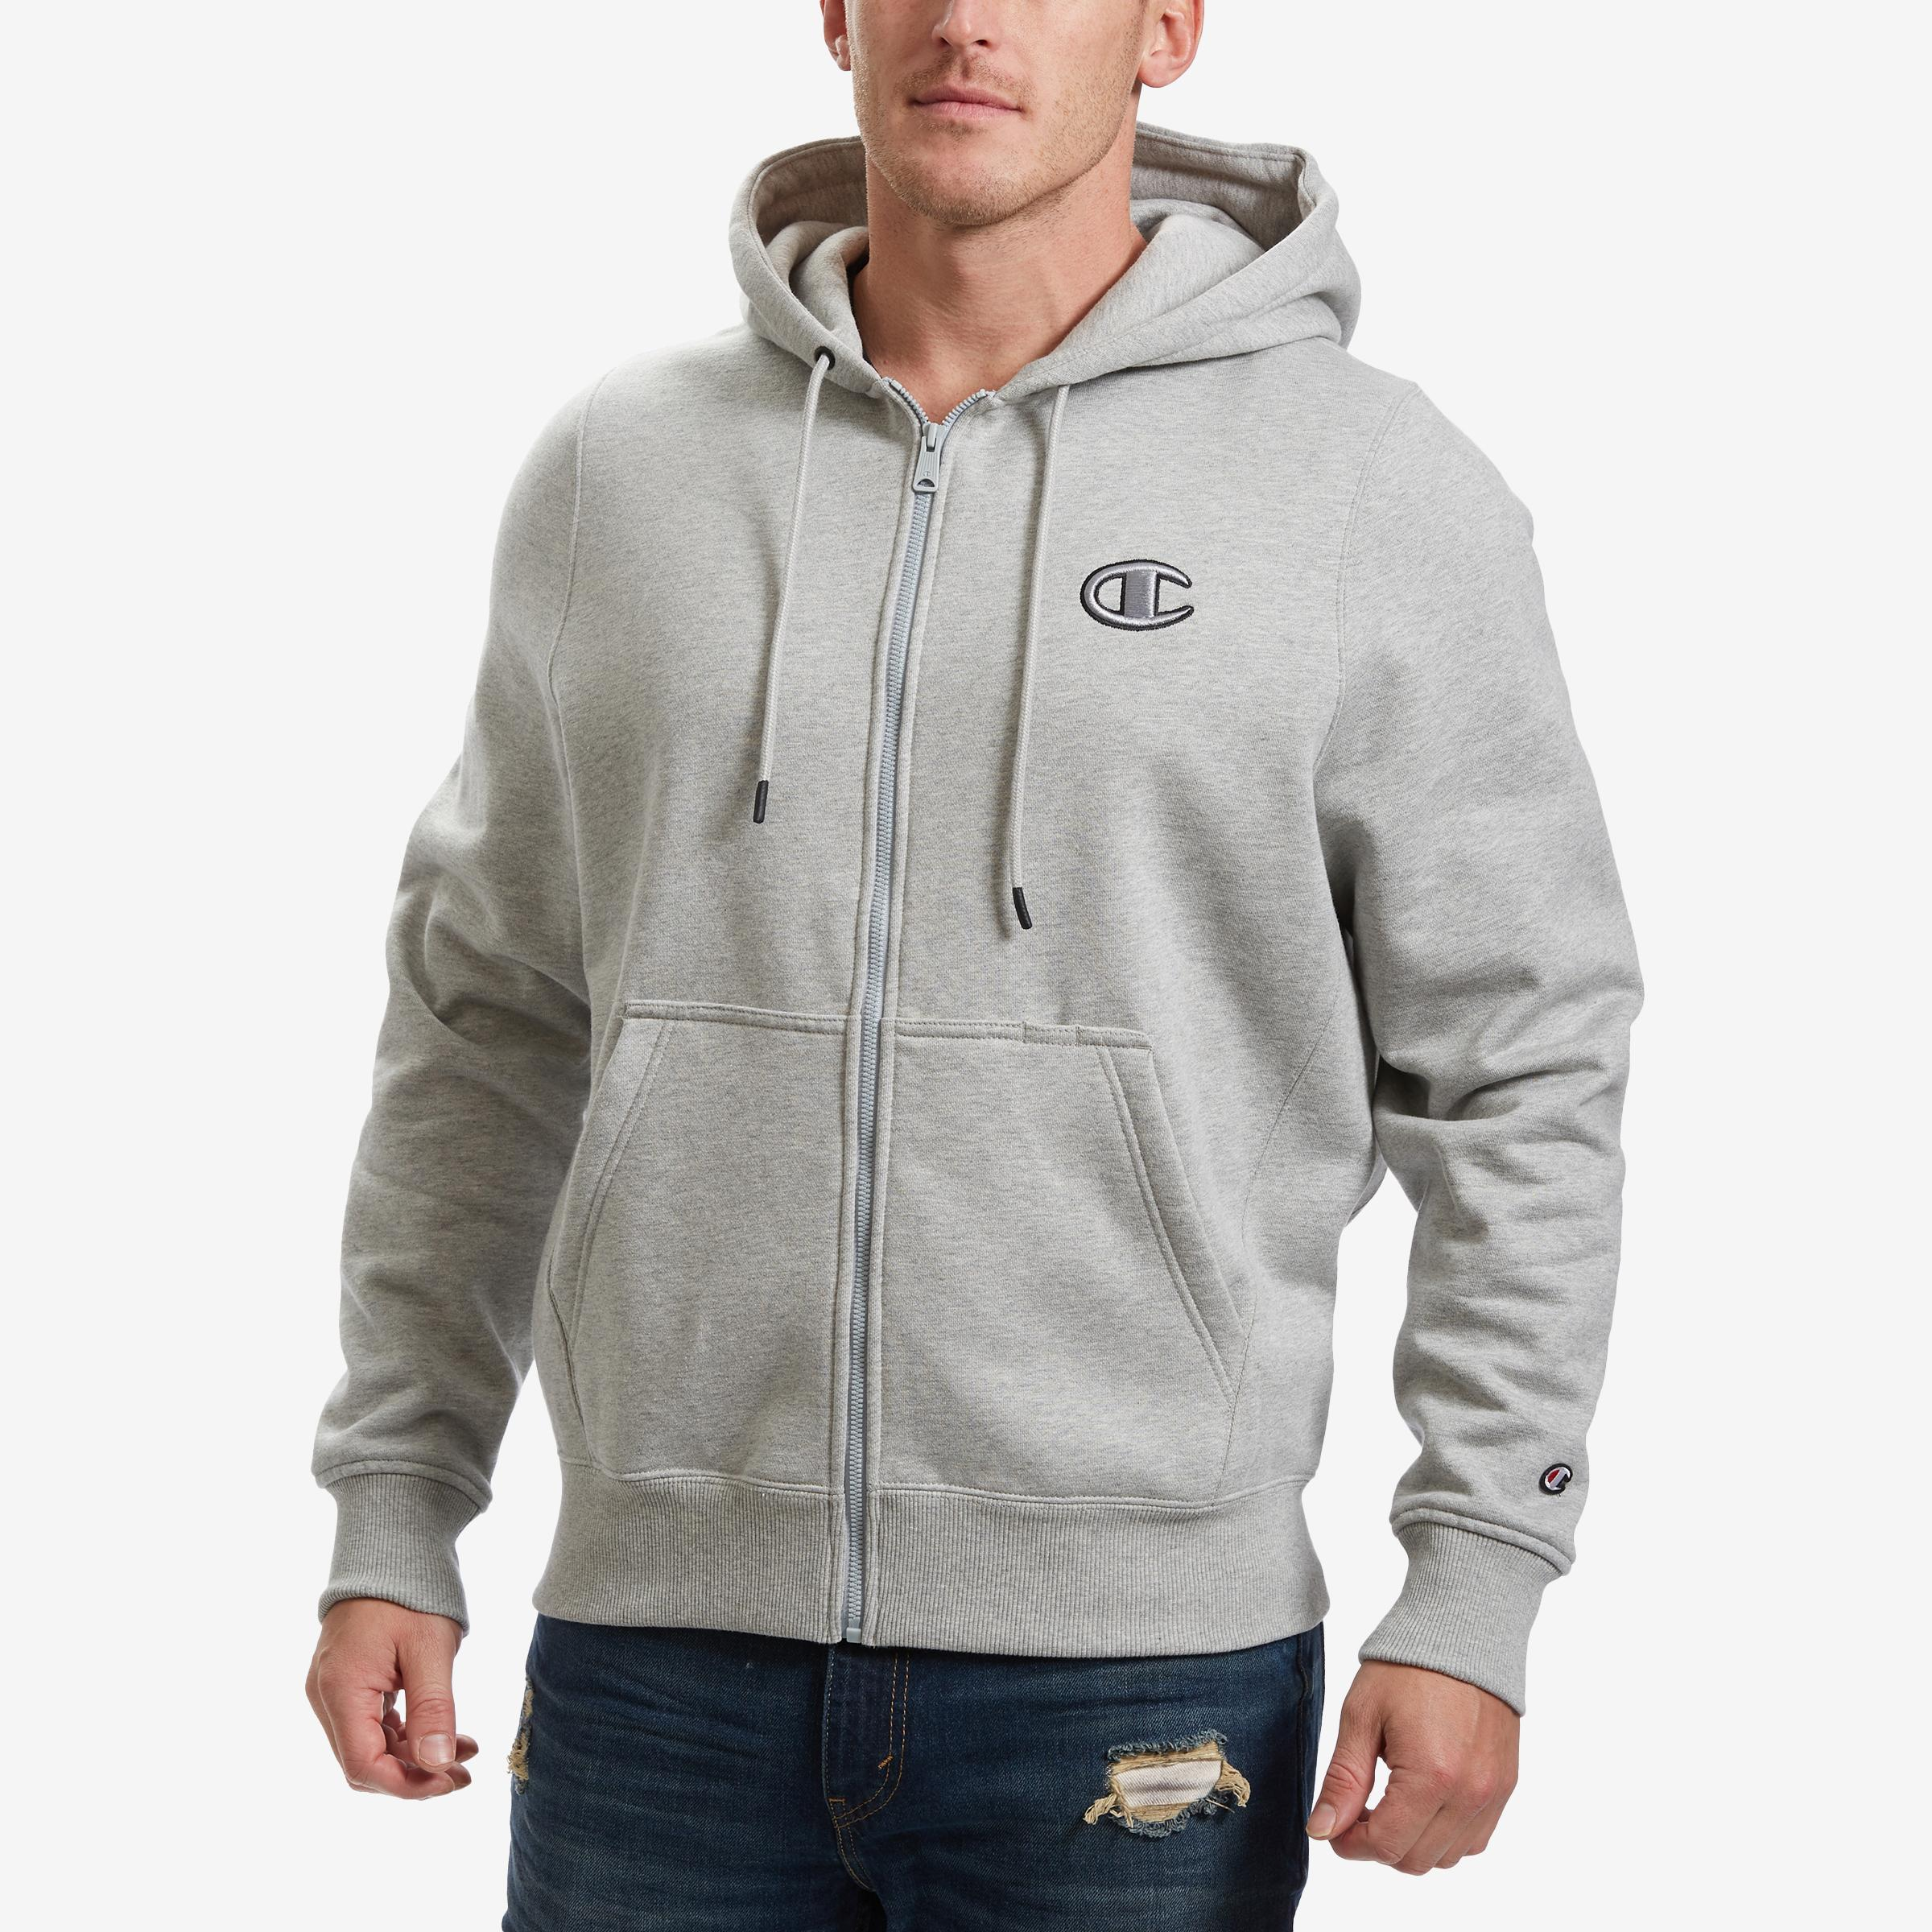 Men's Super Fleece 2.0 Full Zip Hoodie